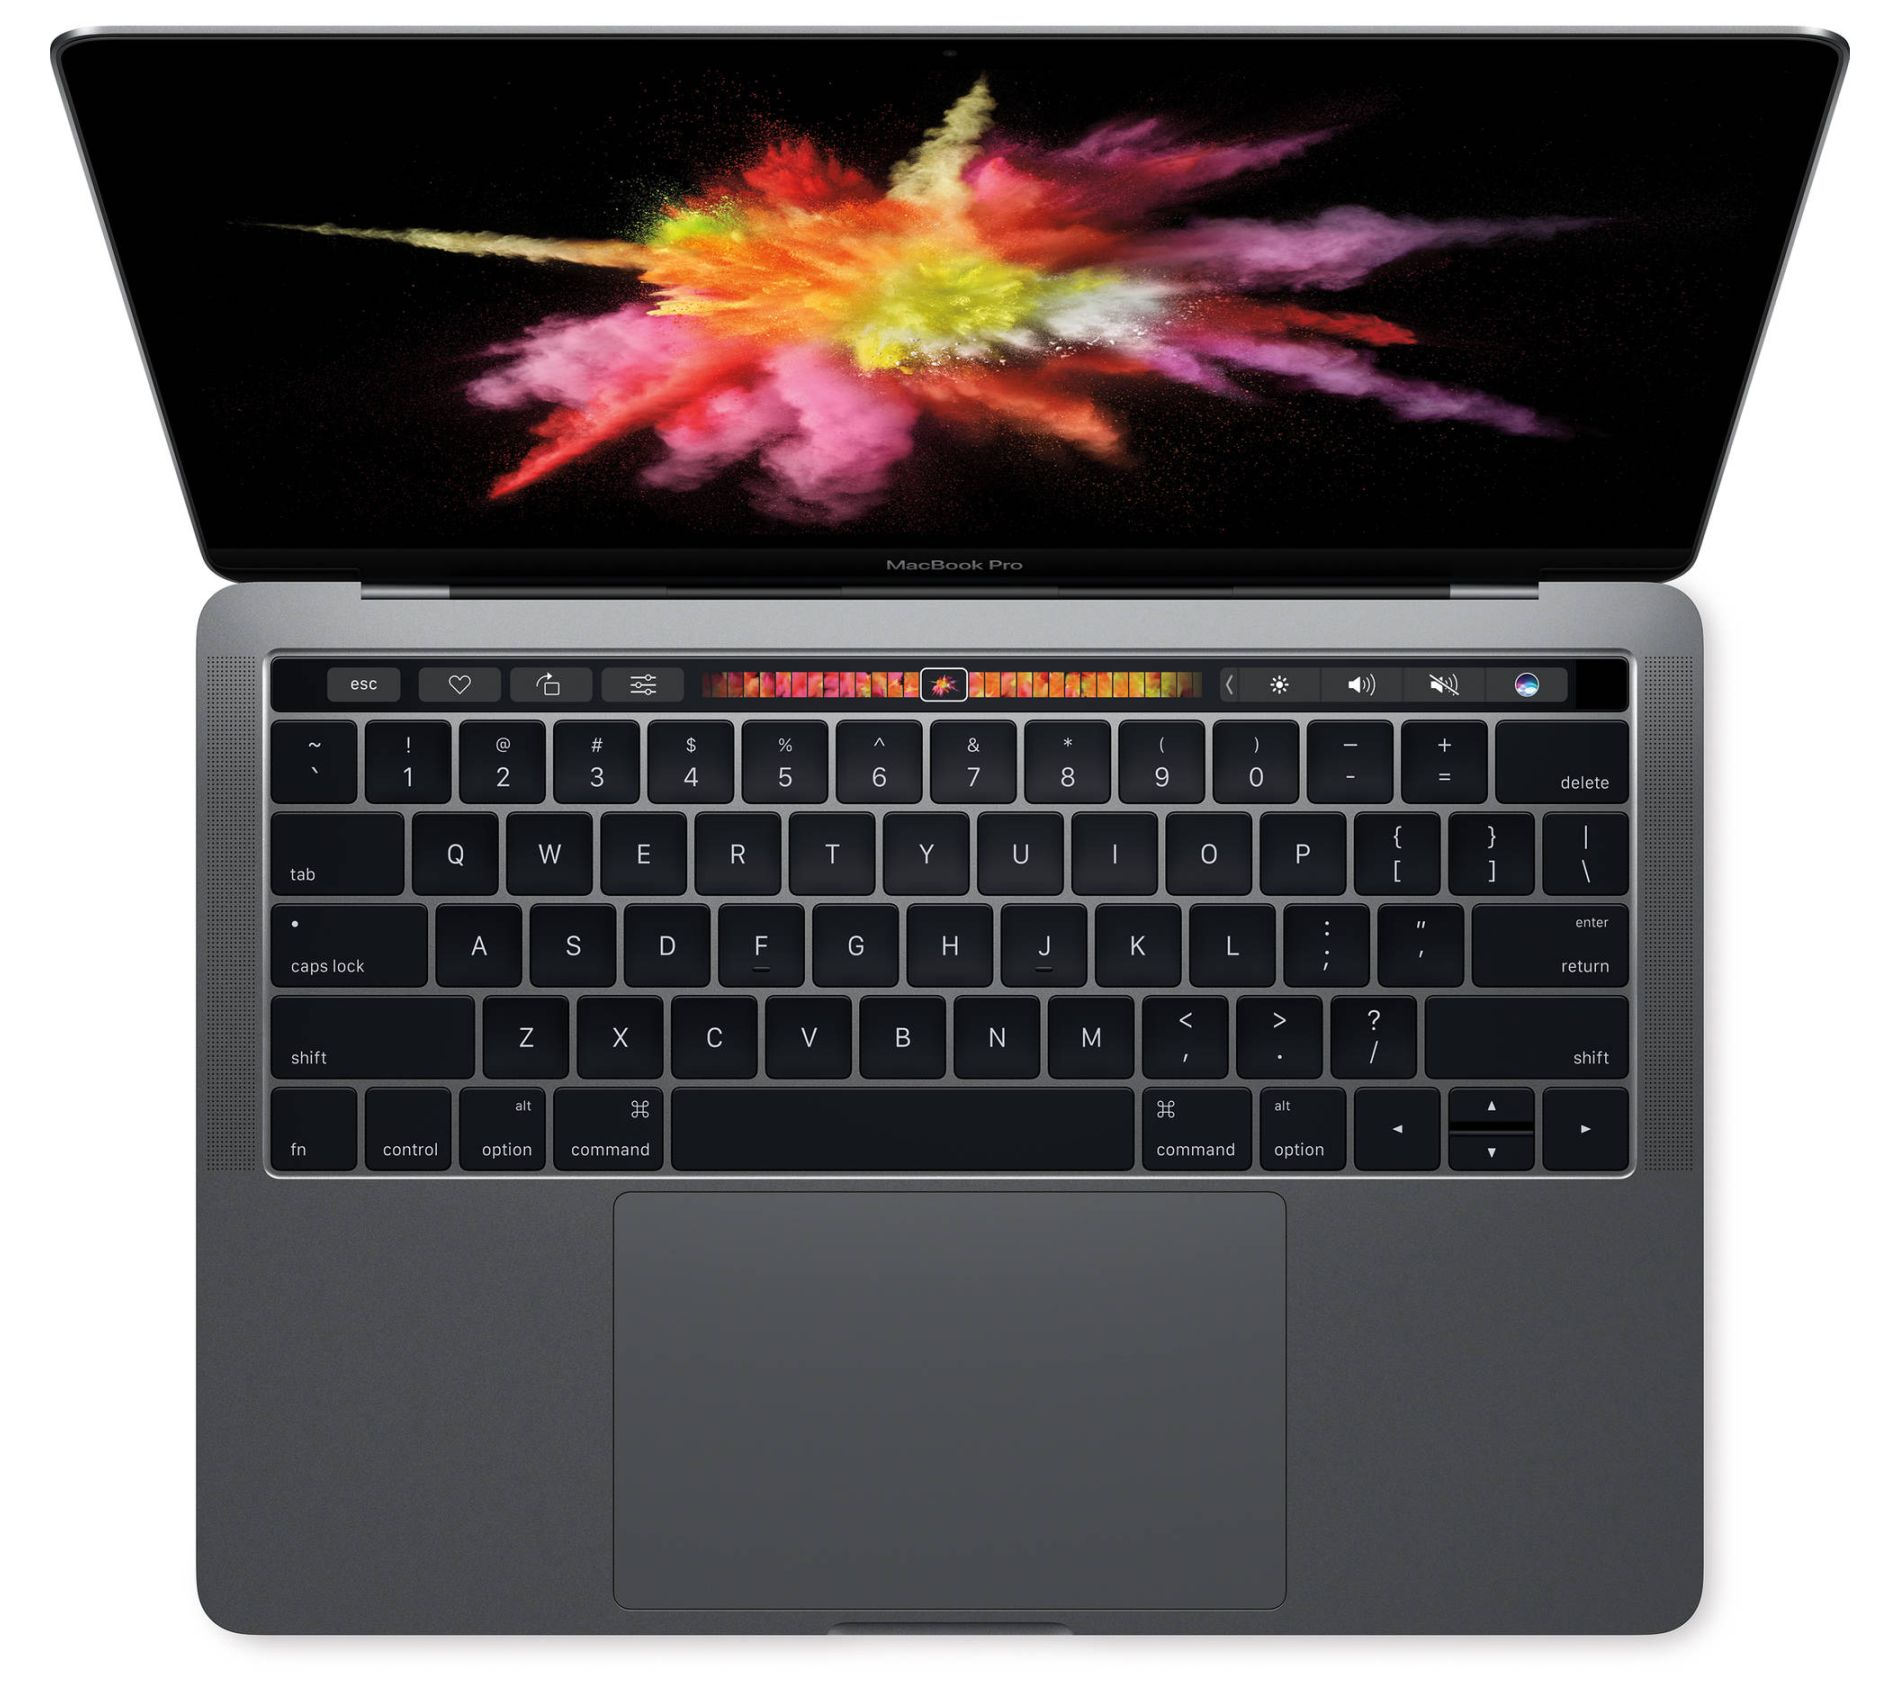 Apple MacBook Pro 15.4 Inch Laptop with Touch Bar 16GB RAM 512GB HD Space Gray MLH42LL A by Apple